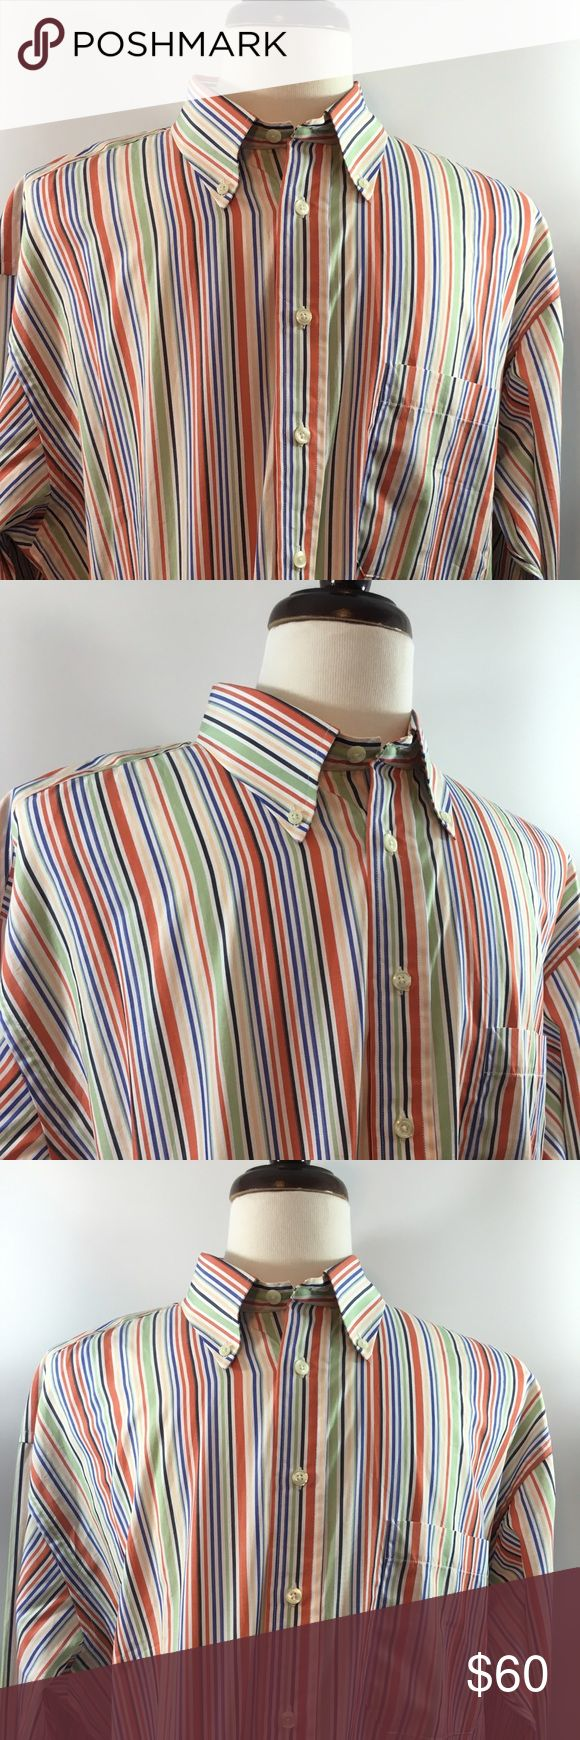 🔥 Men's Burberry XL Multicolored Shirt 🔥 Men's Burberry XL Multicolored Striped Shirt. In excellent pre owned condition and free of any rips or stains and from a pet free and smoke free home. Beautiful Shirt for any occasion! Thanks for shopping my closet! Burberry Shirts Casual Button Down Shirts